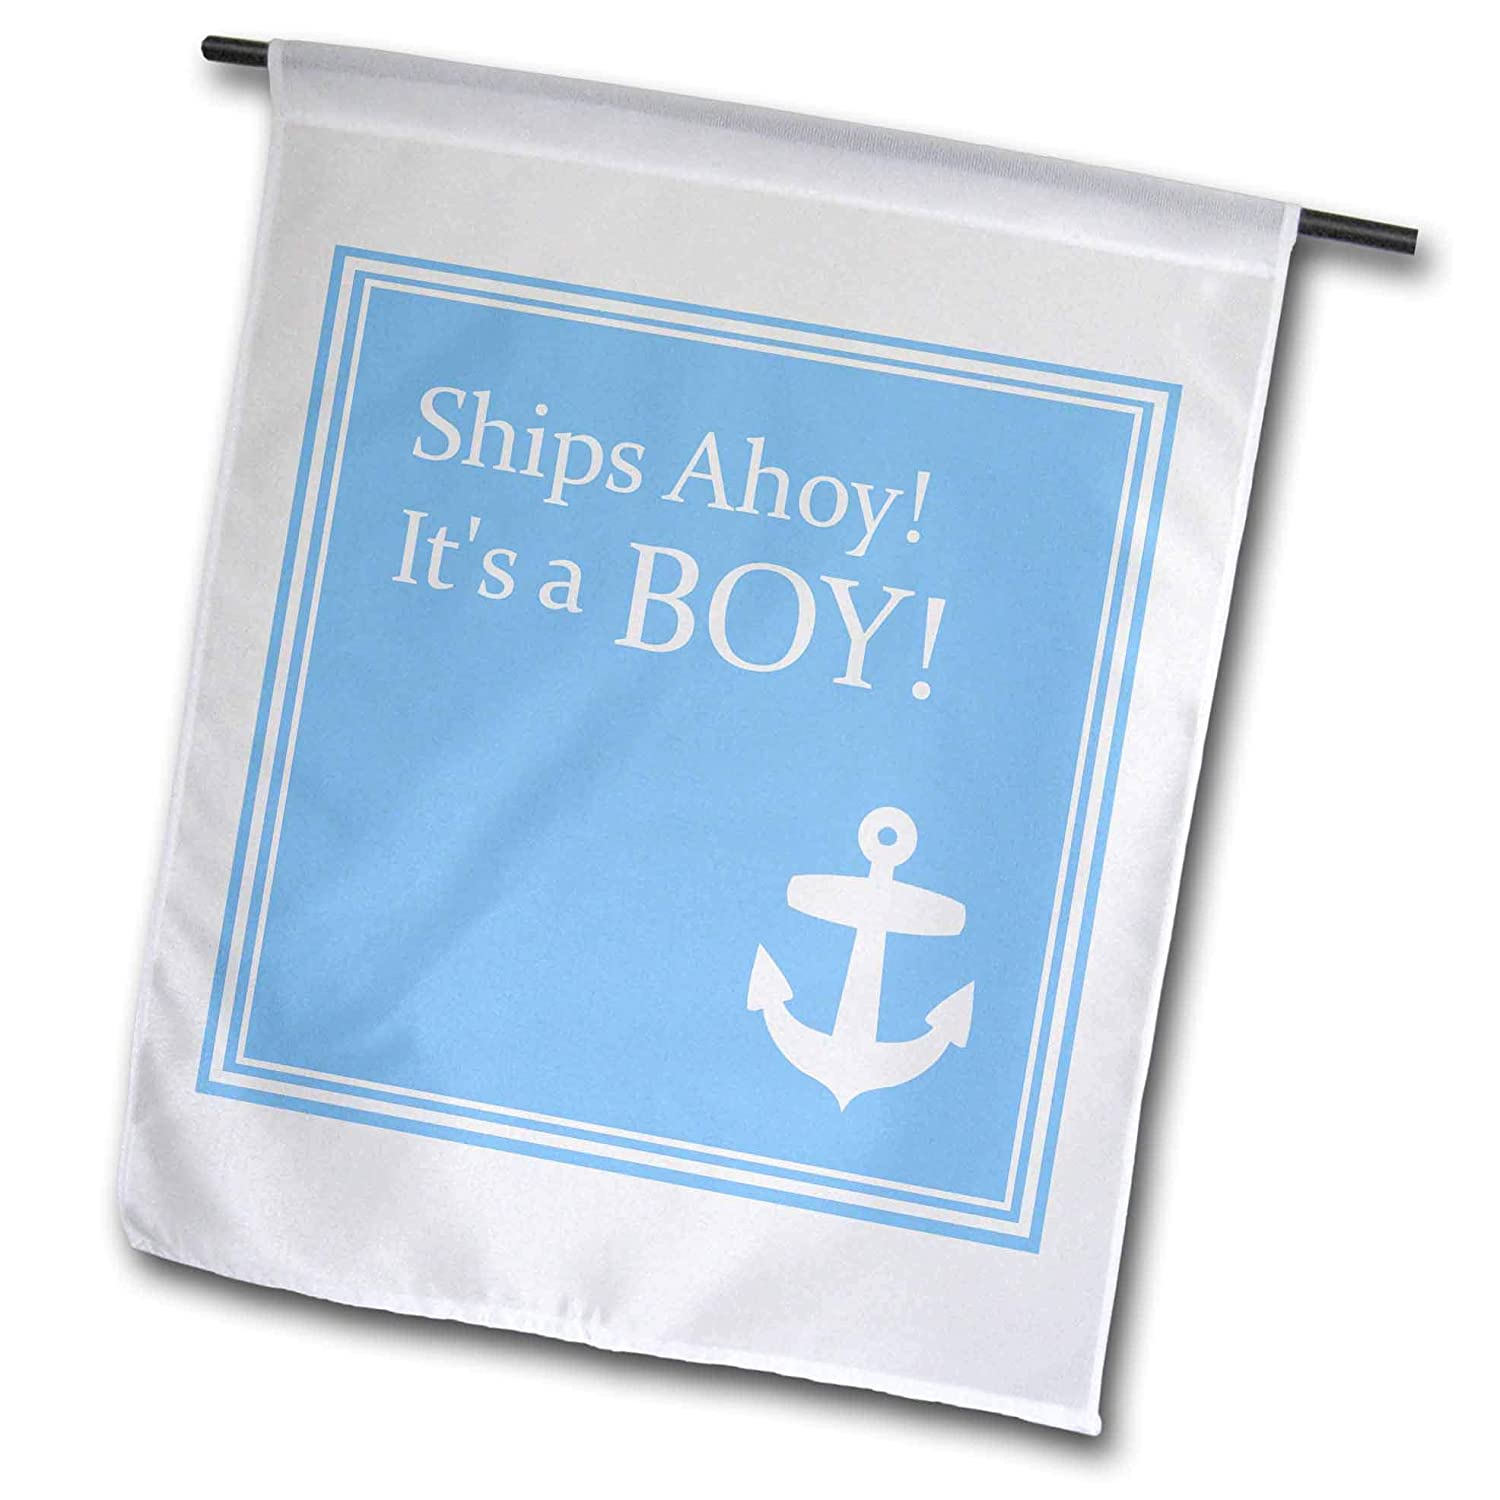 3dRose Fl_151388_1 Ships Ahoy Its a Boy for Baby Showers/Light Powder Blue with White Anchor Sailor Nautical Theme Garden Flag, 12 by 18-Inch